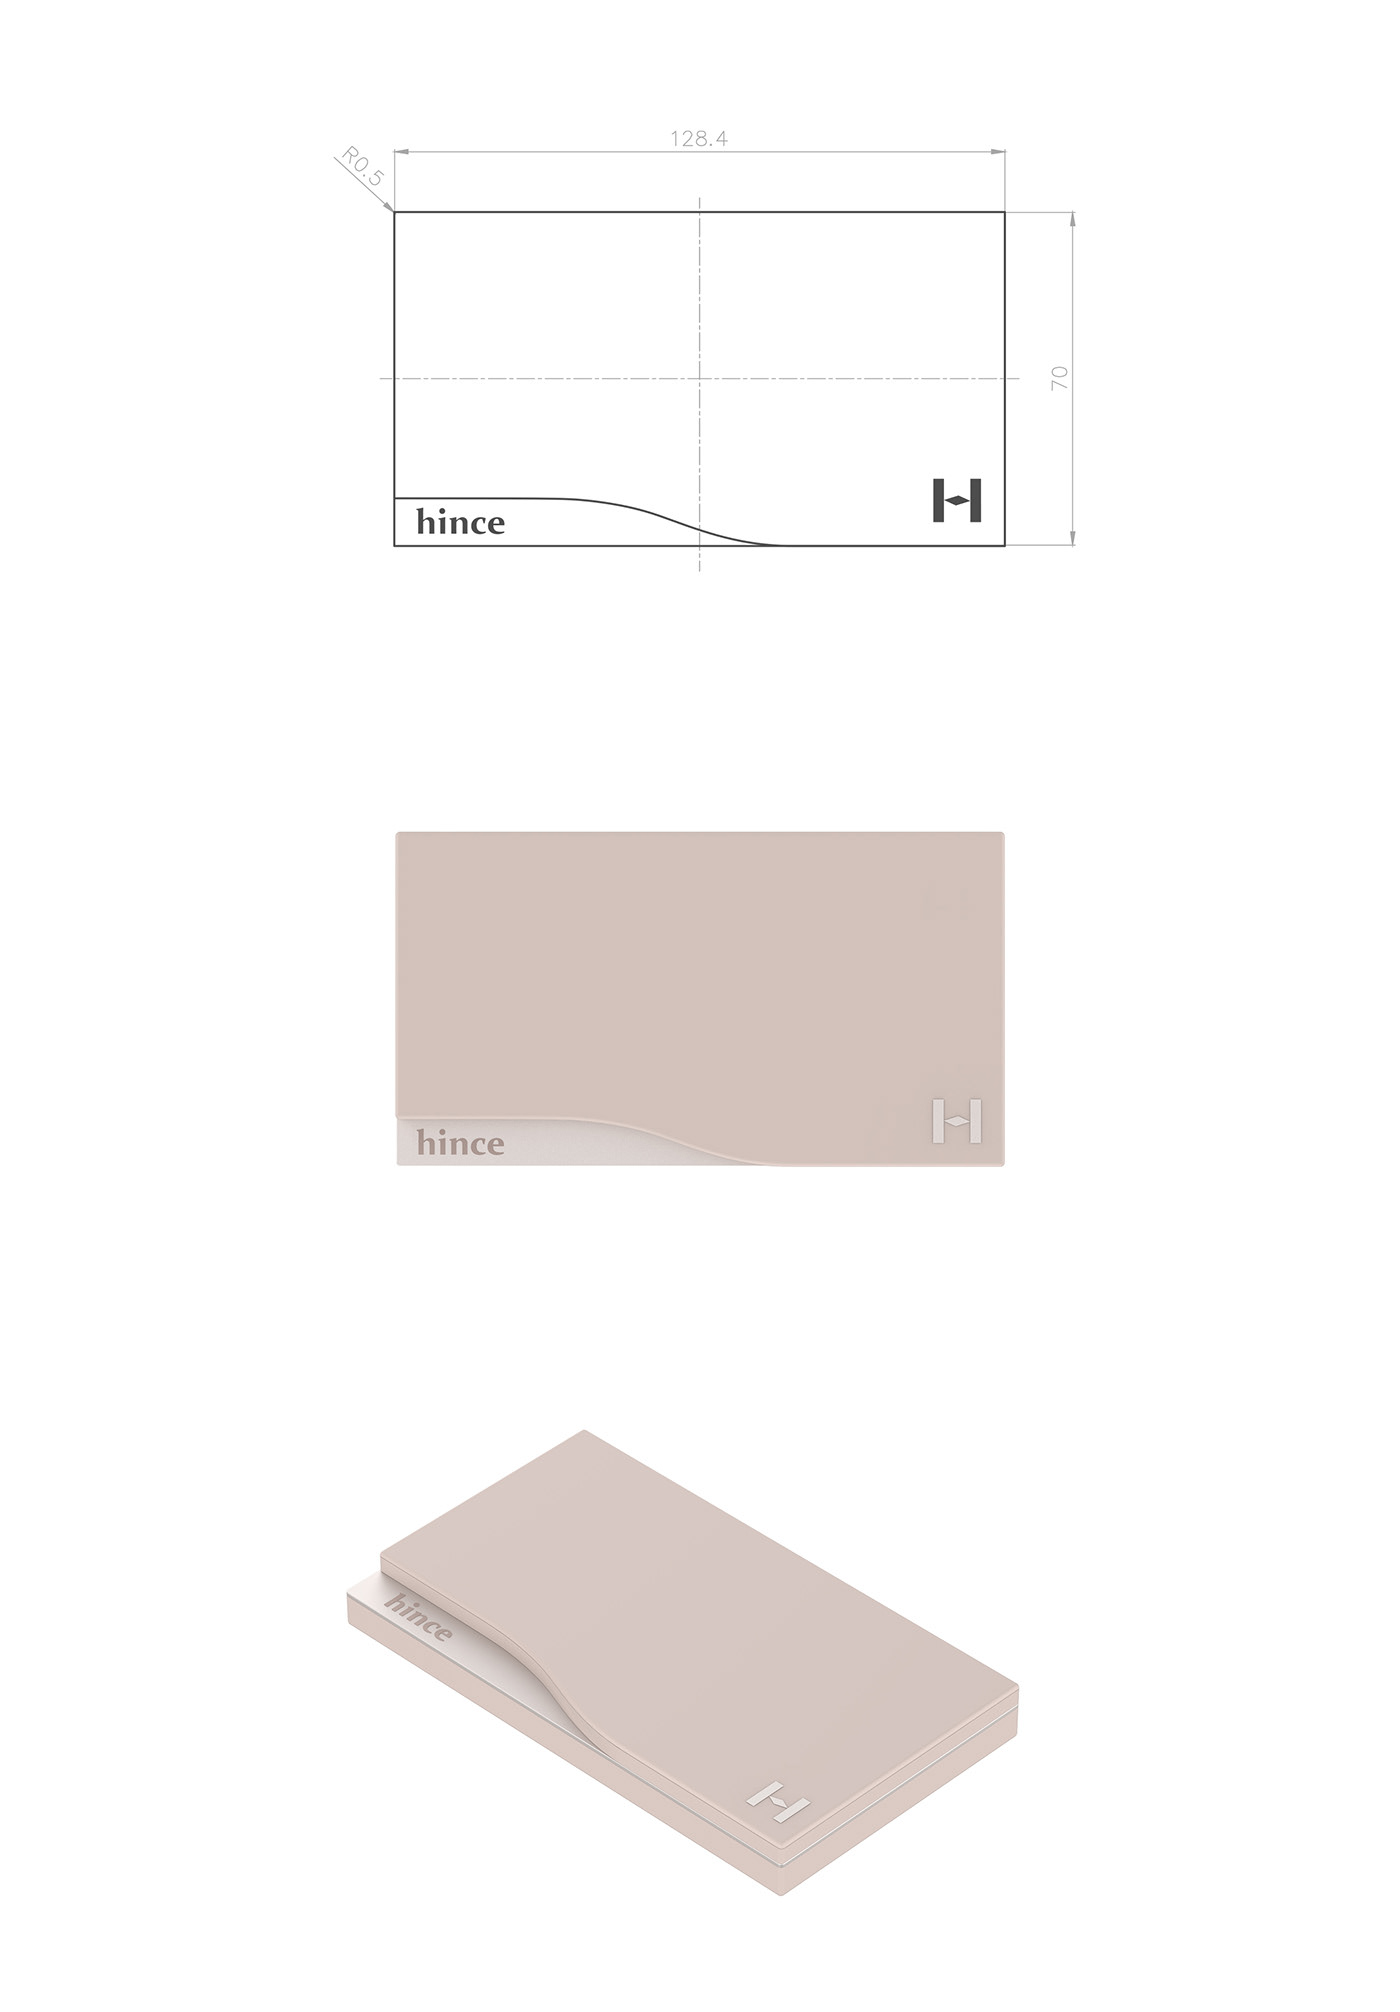 concept cosmetics design eyeshadowpalette makeup makeupproducts packagedesign Packaging productdesign simple